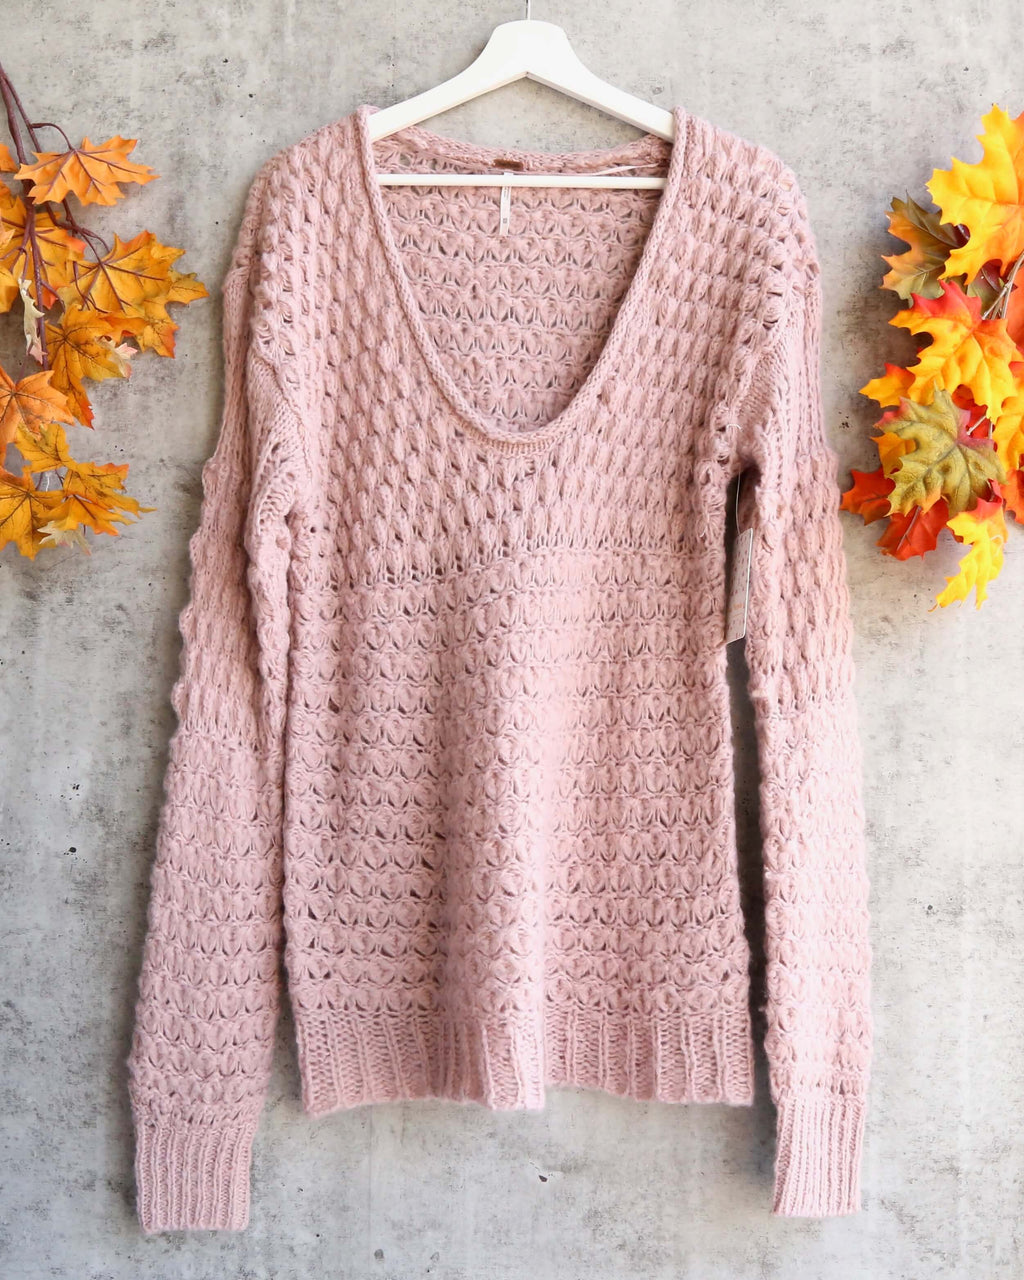 Free People - Crashing Waves Wool Blend Bishop Sleeve Chunky Knit Pullover Sweater - Mauve